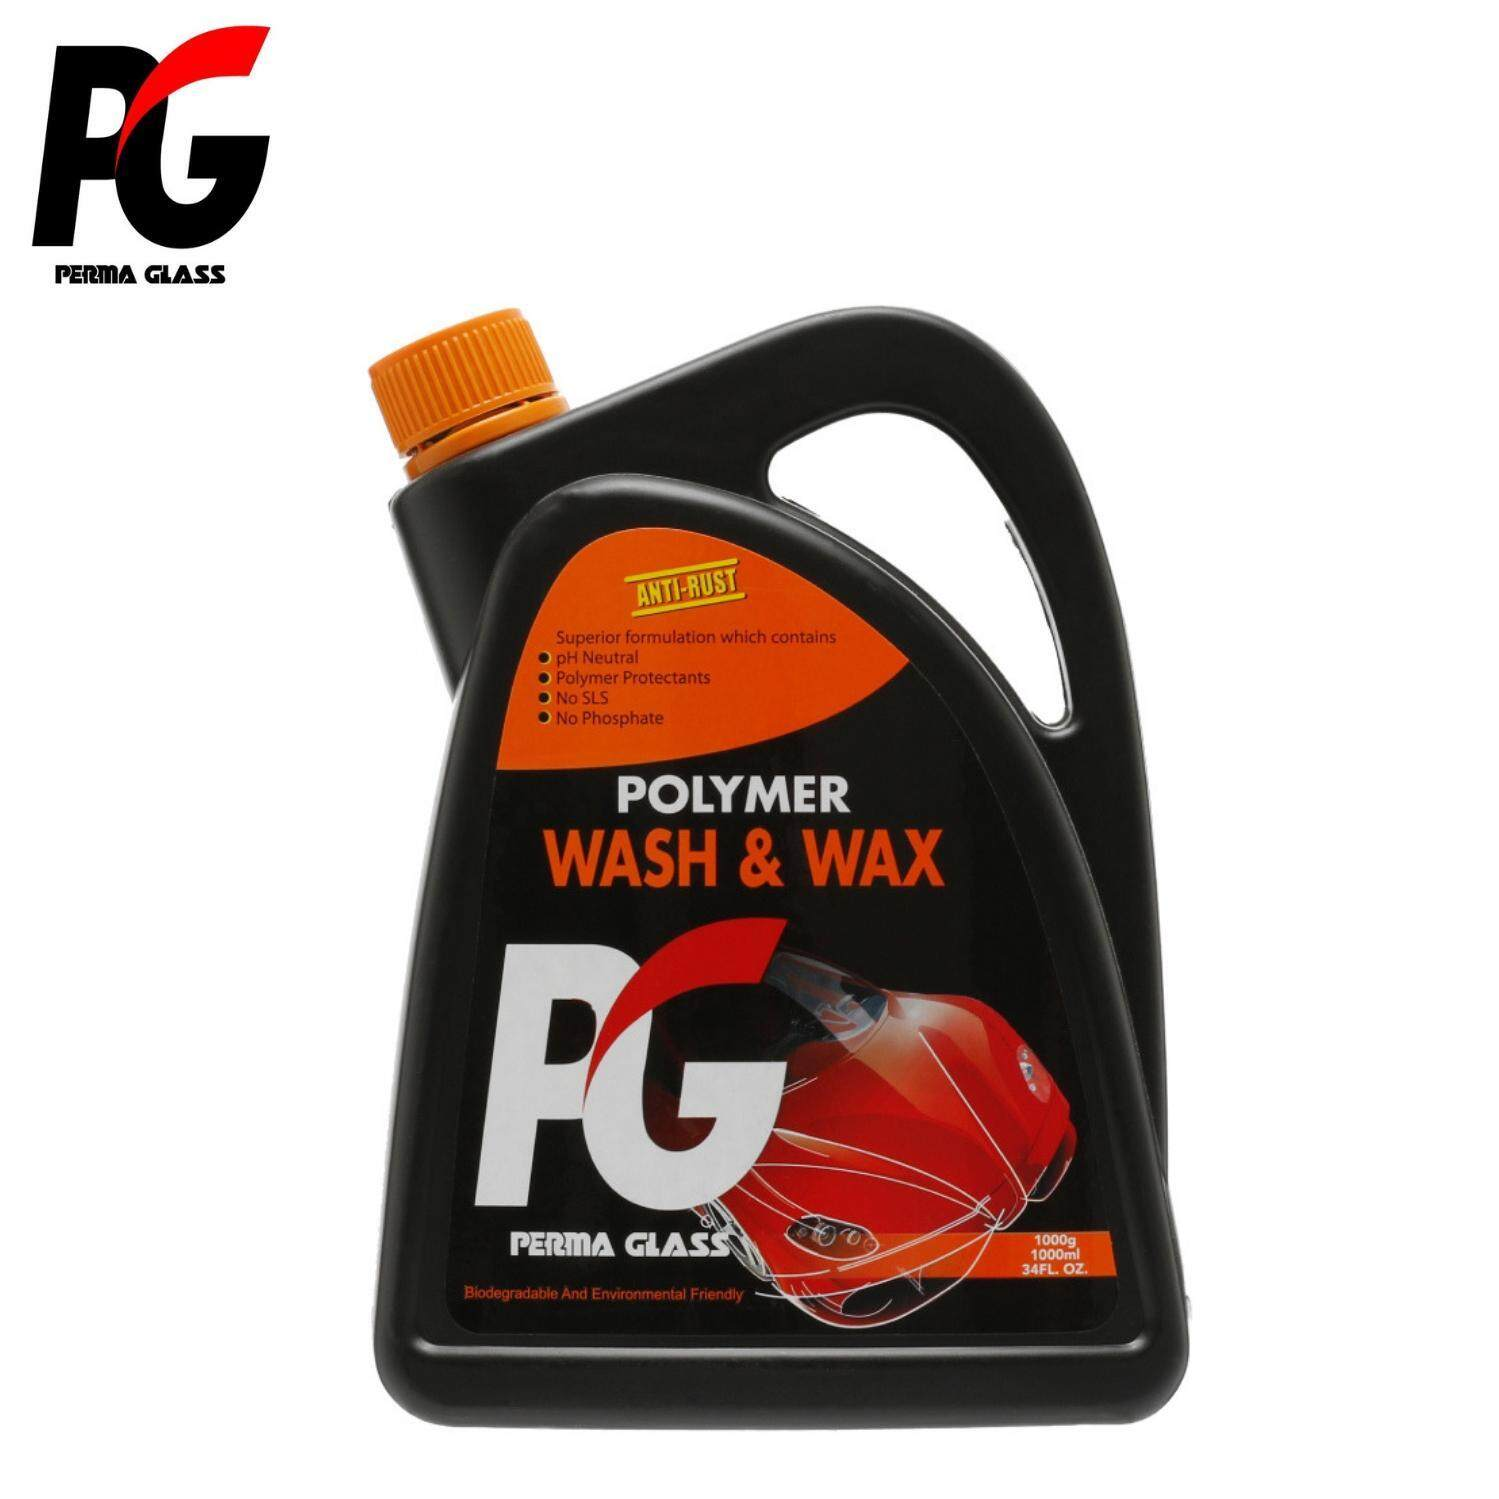 PG POLYMER WASH & WAX (1000ML) - CAR CARE EXTERIOR